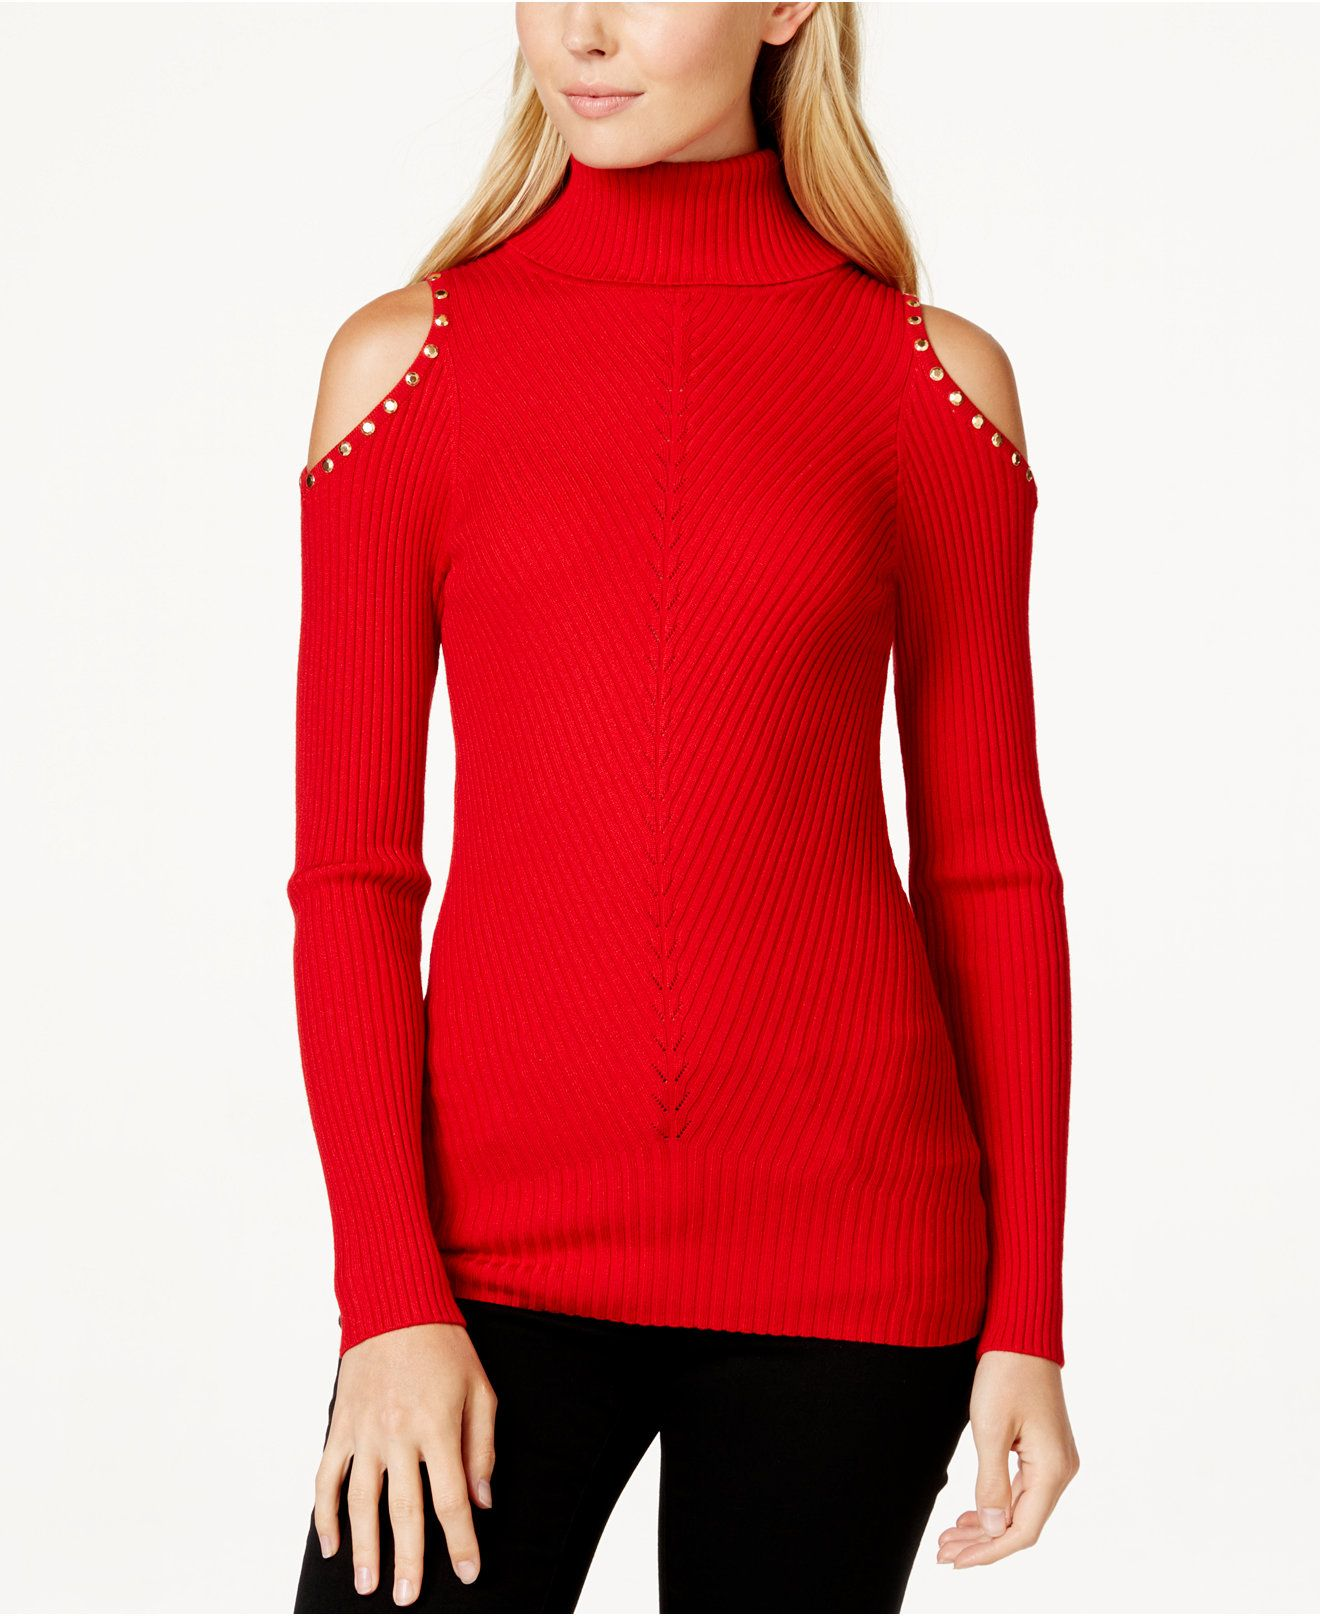 XOXO Juniors' Studded Cold-Shoulder Turtleneck Sweater - Juniors ...